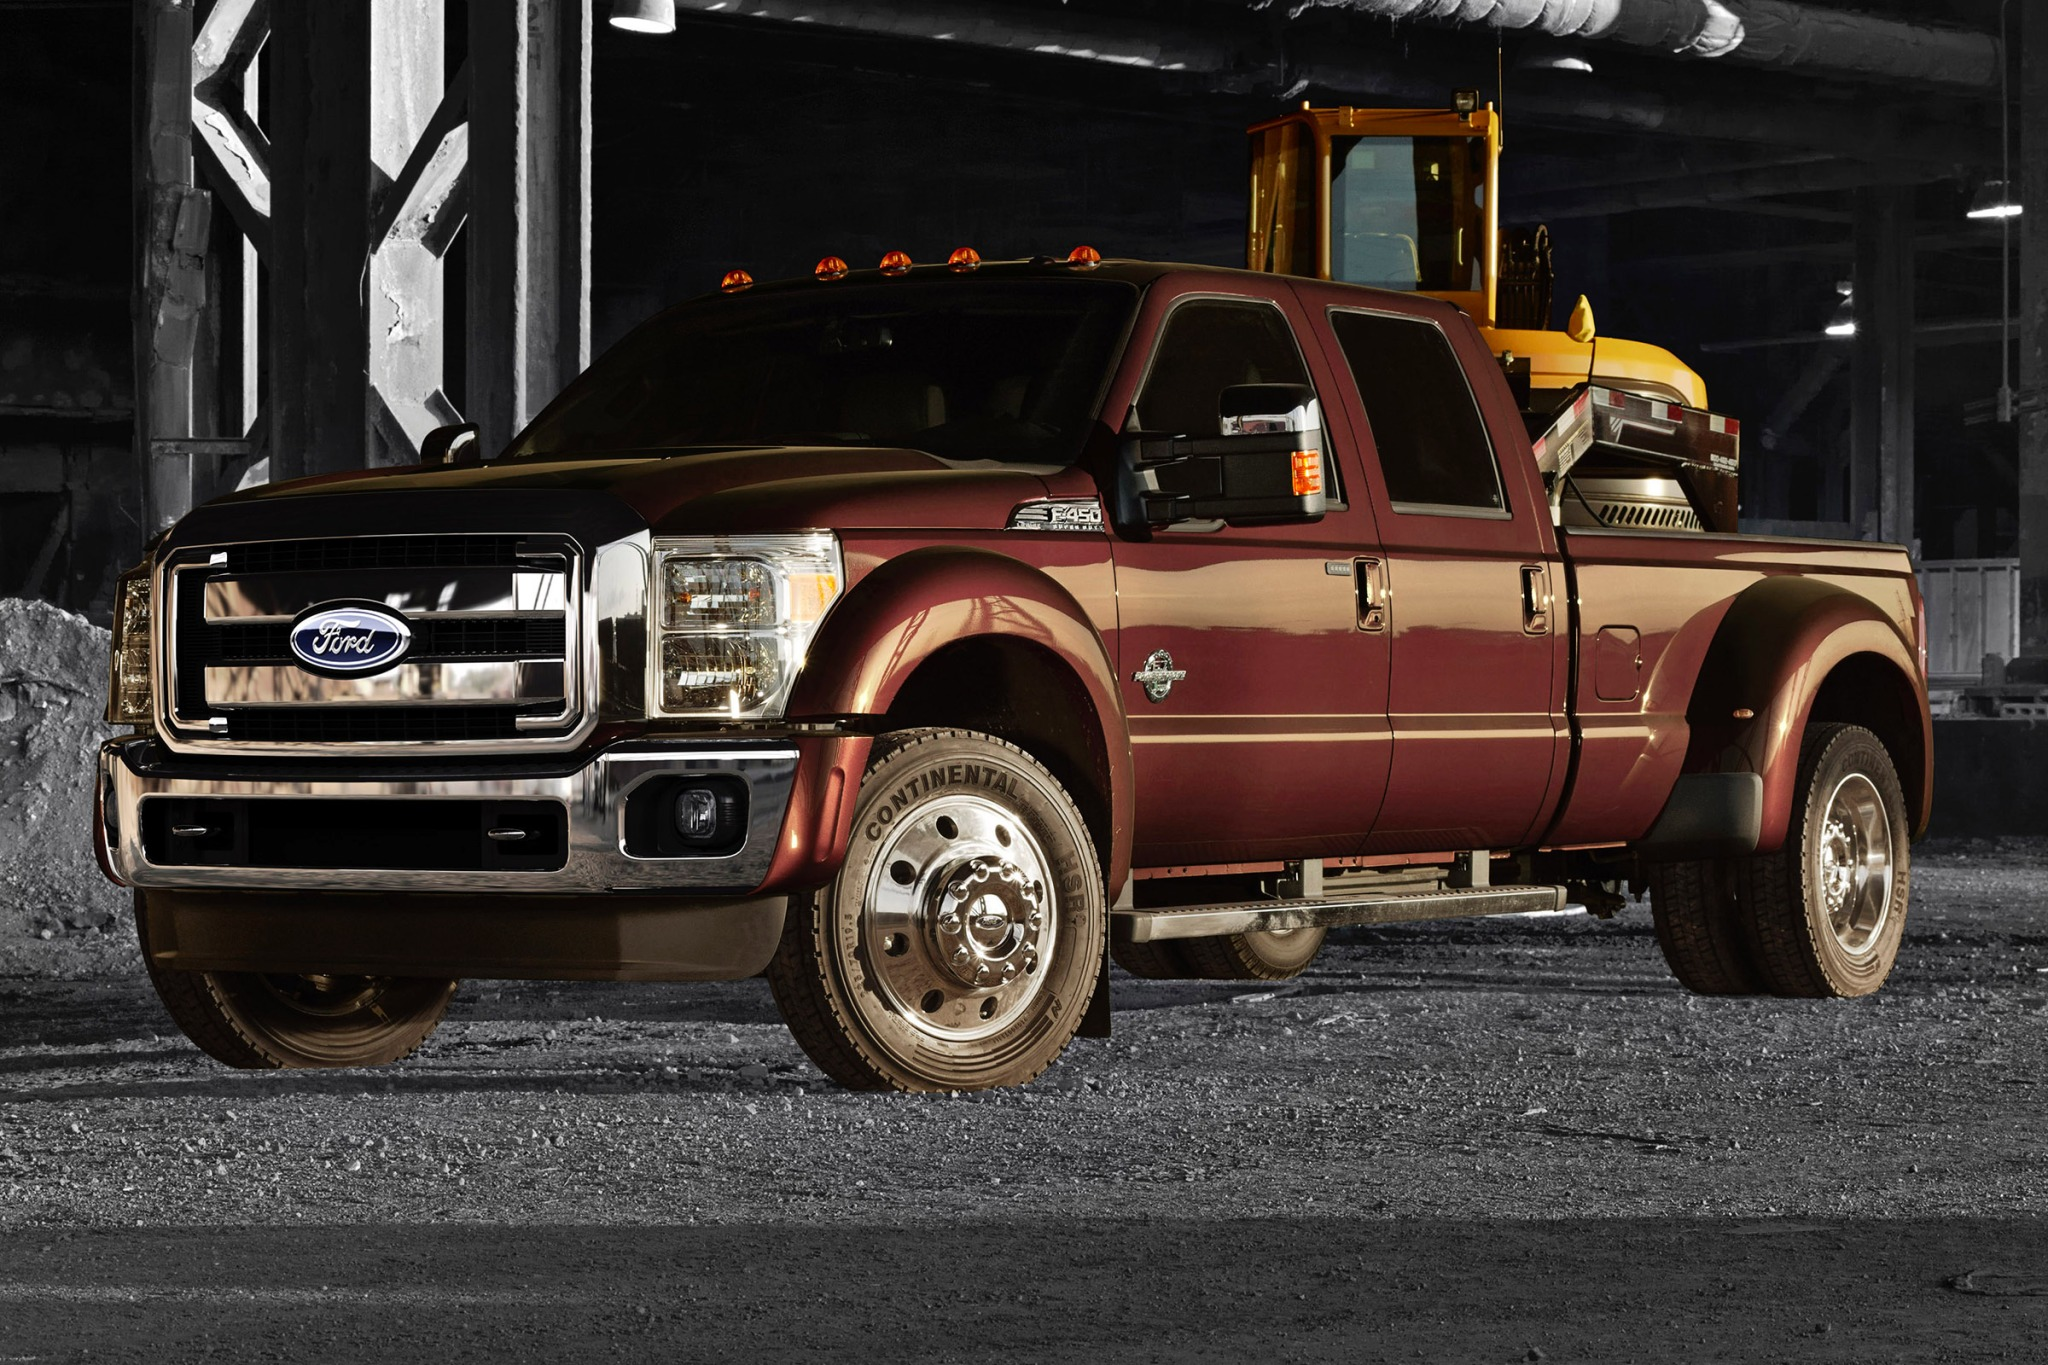 2015 Ford F-450 Super Dut interior #3